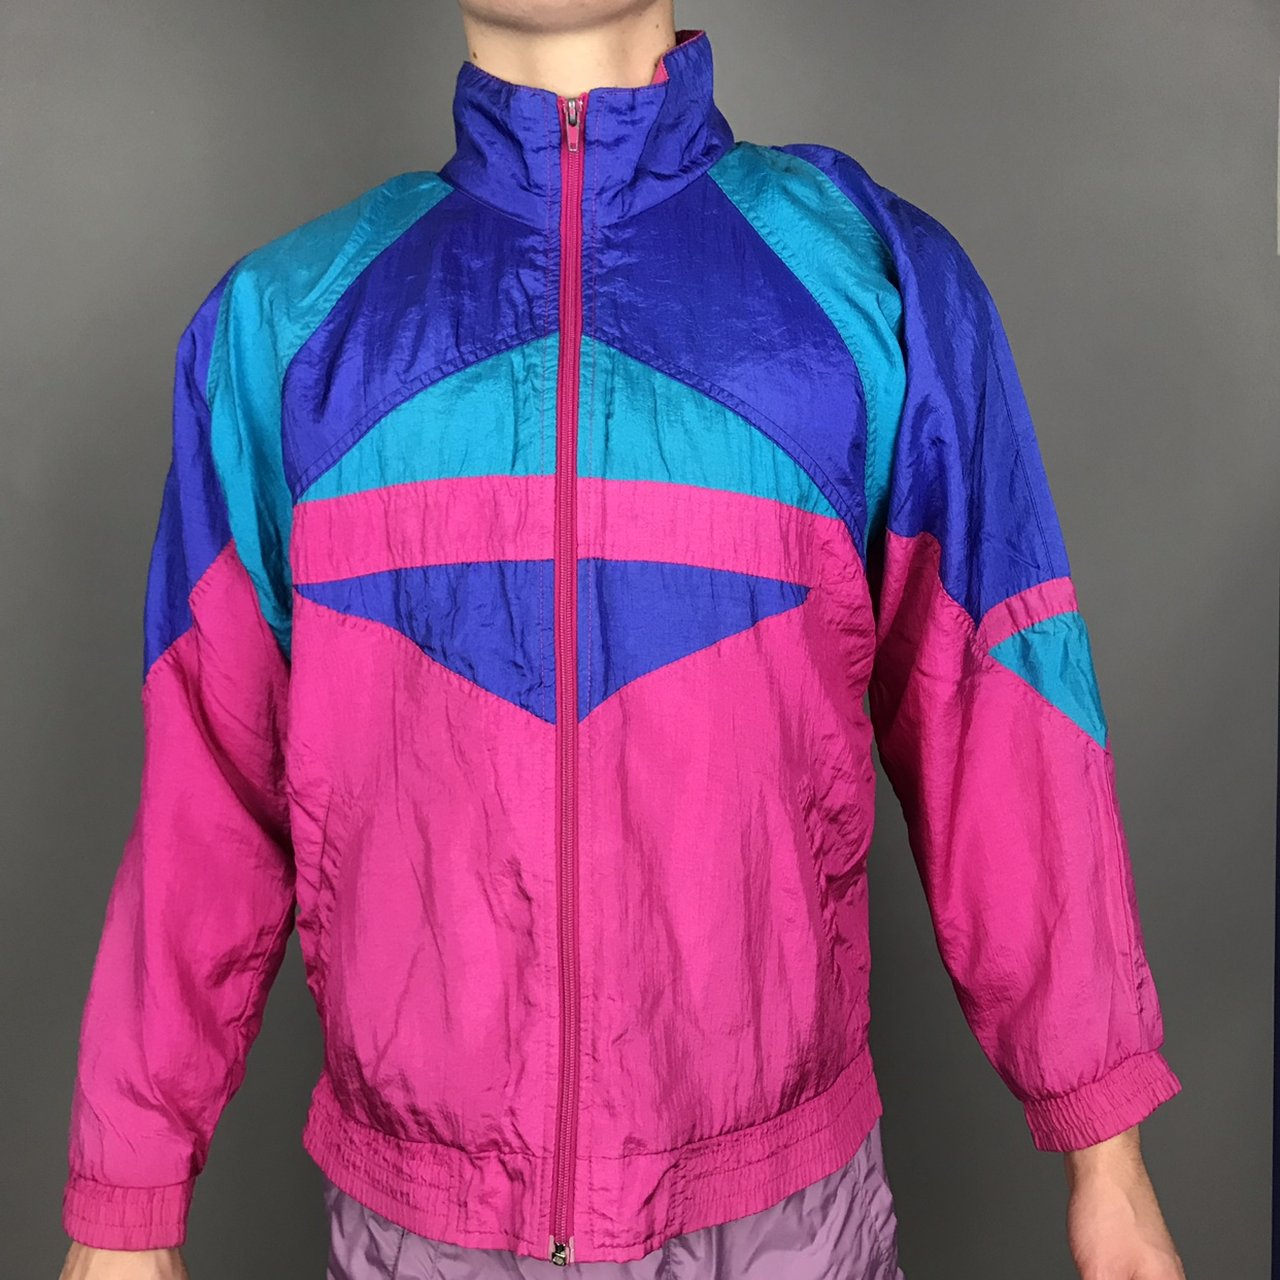 0c7abc832d Vintage 90s colorful Windbreaker size small. In excellent I - Depop